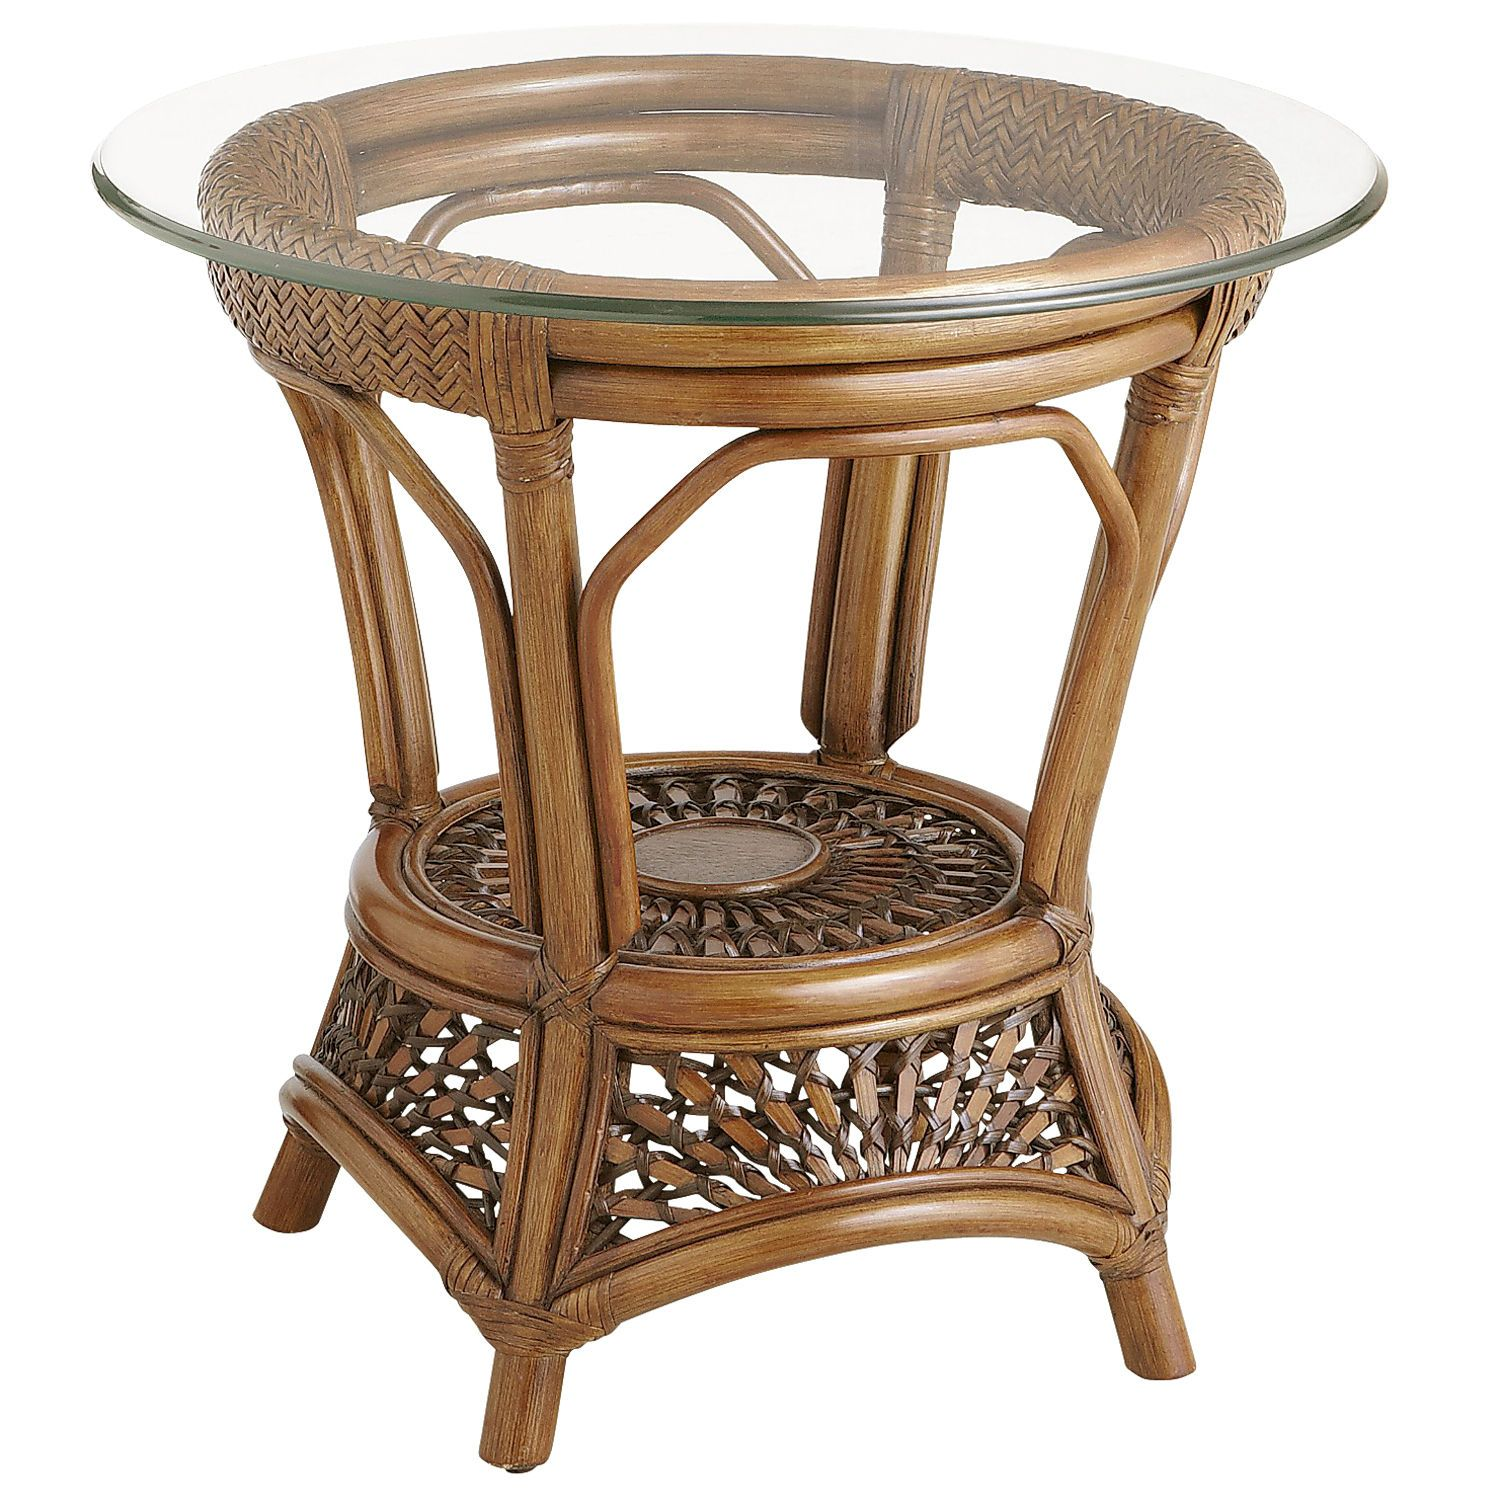 Best Azteca End Table Pecan Brown Pier 1 Imports 170 640 x 480